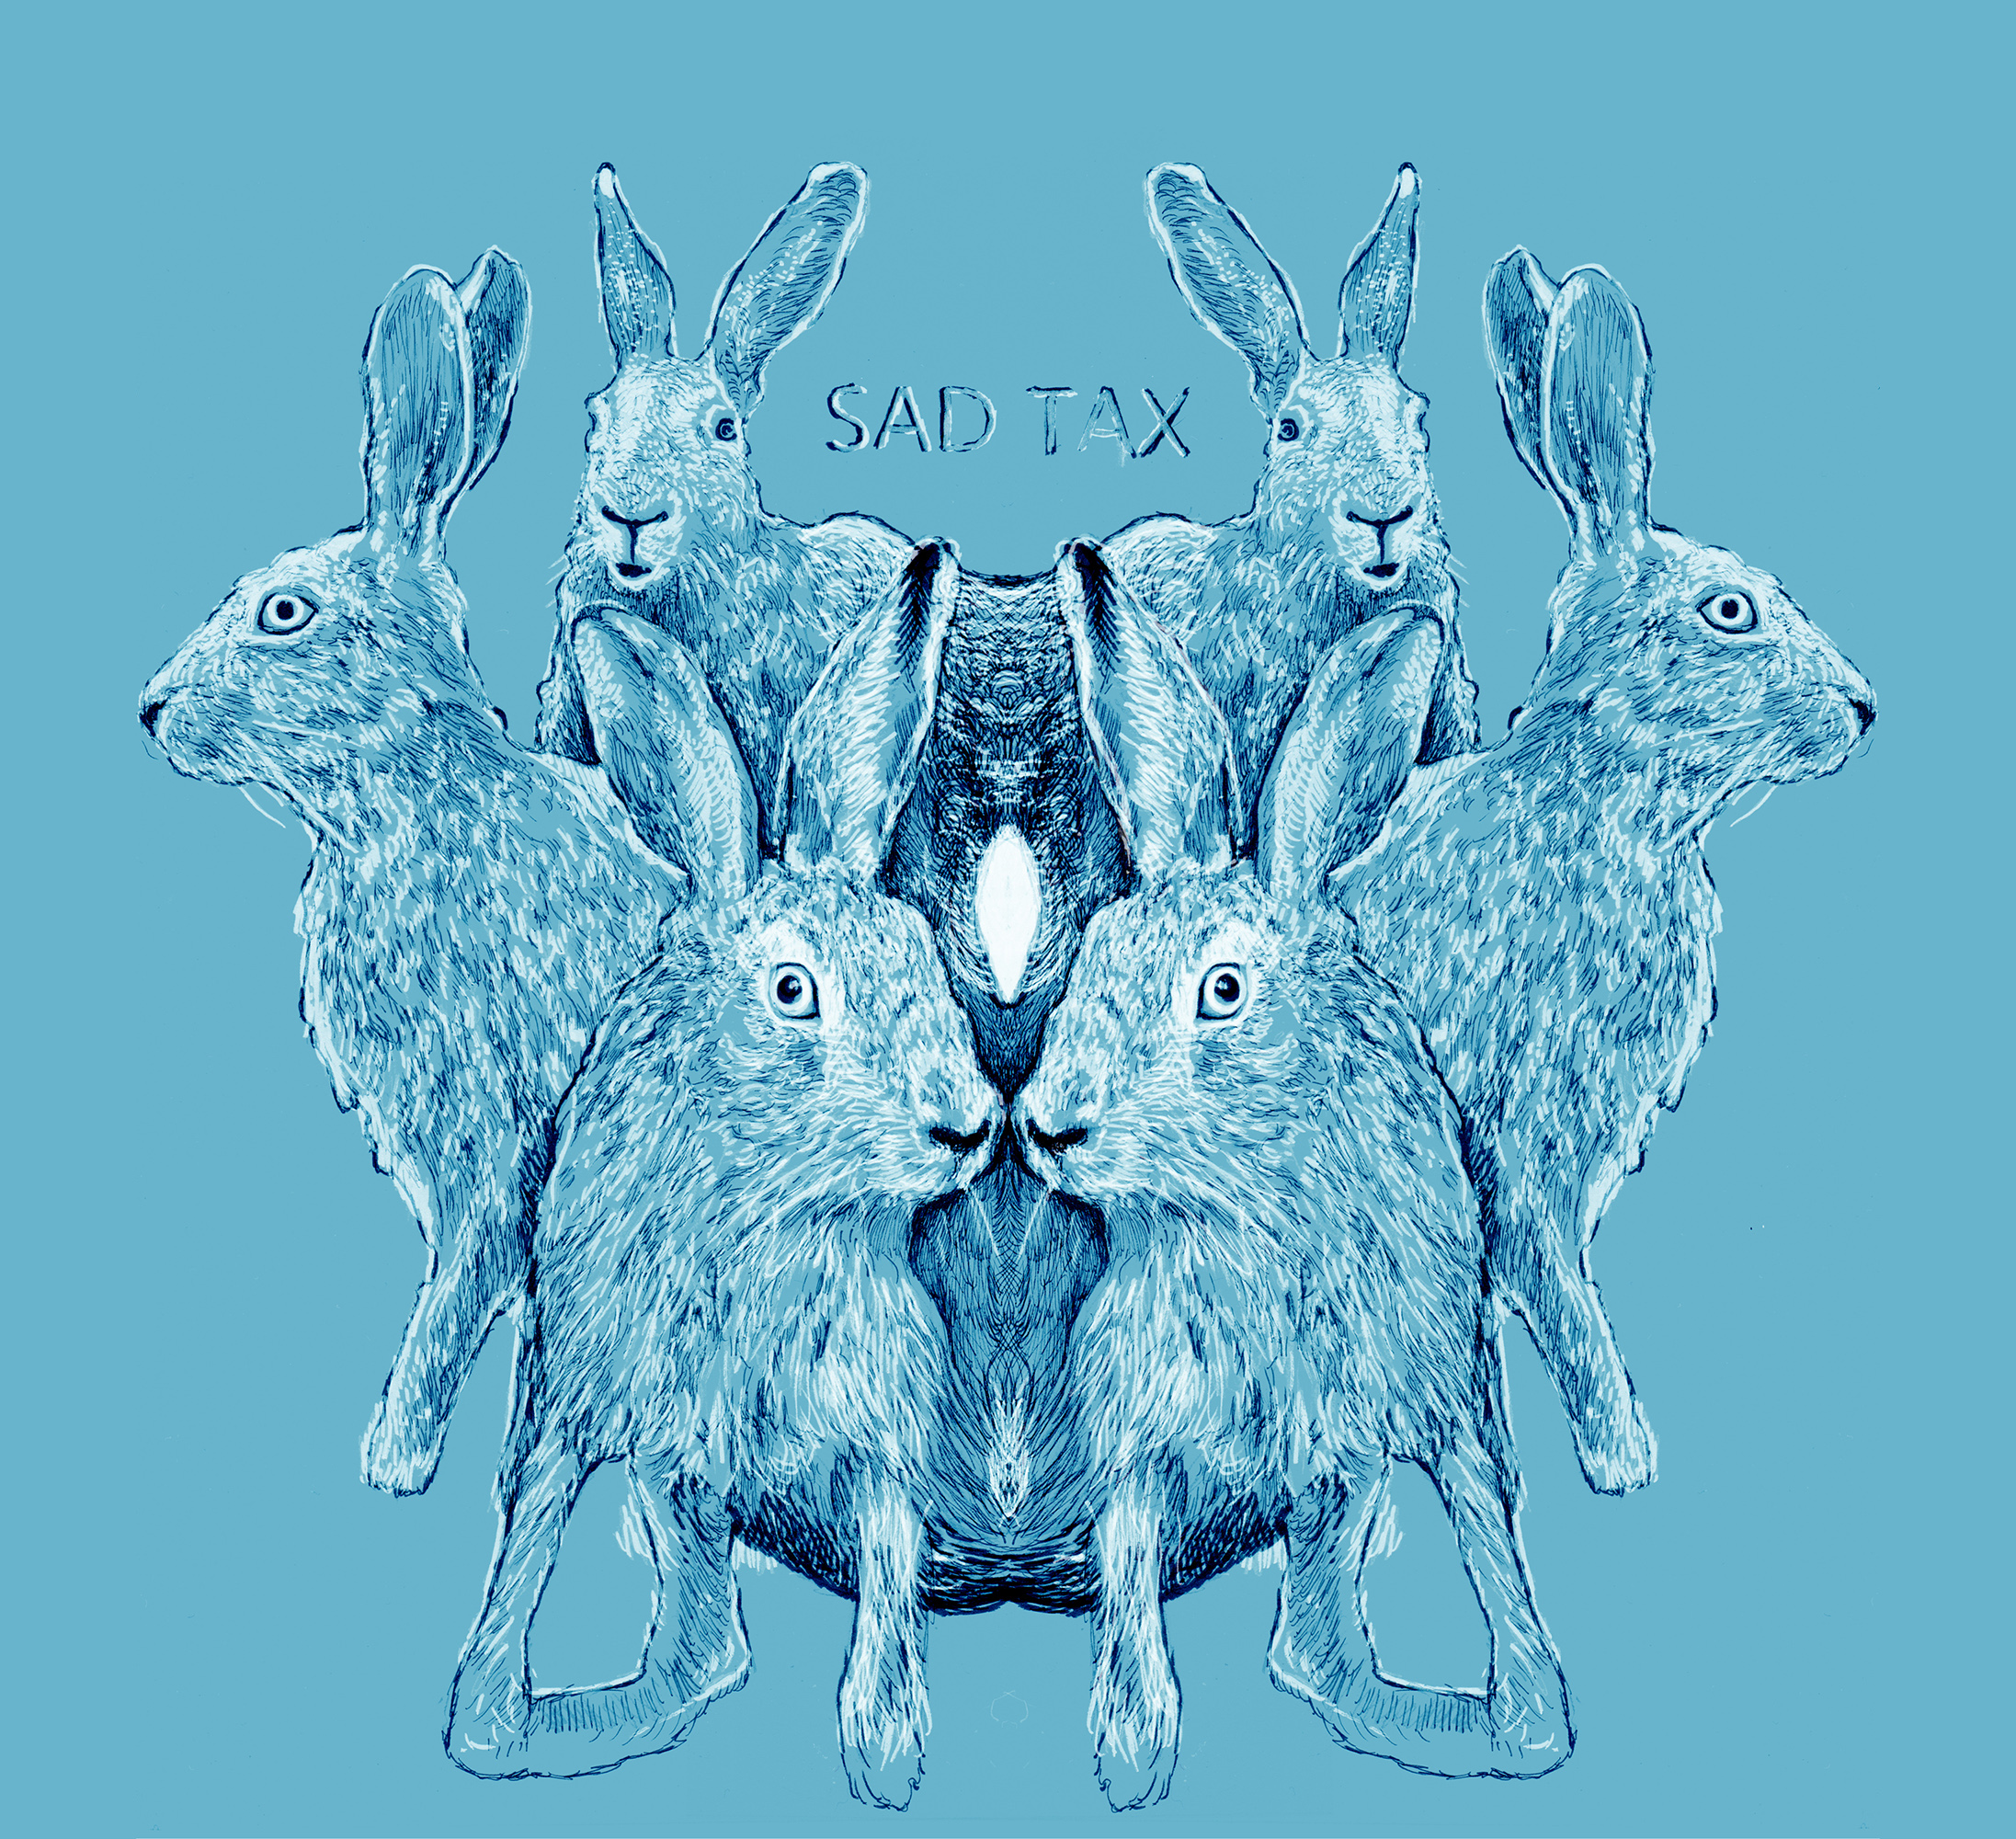 Sad Tax - Rabbit Parallel Miracles - front cover